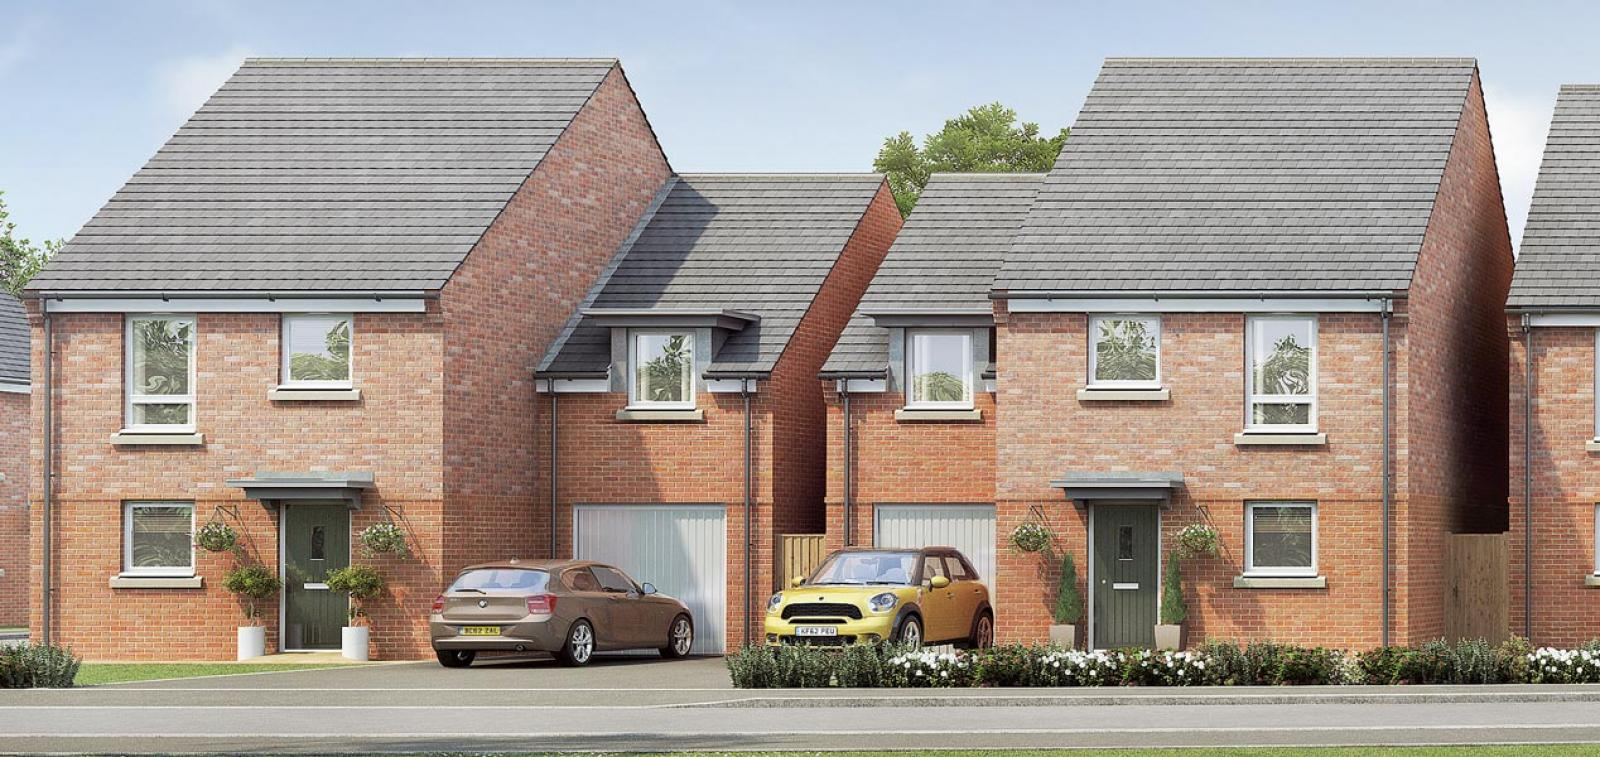 Chase park new build development in ellesmere port for New homes to build